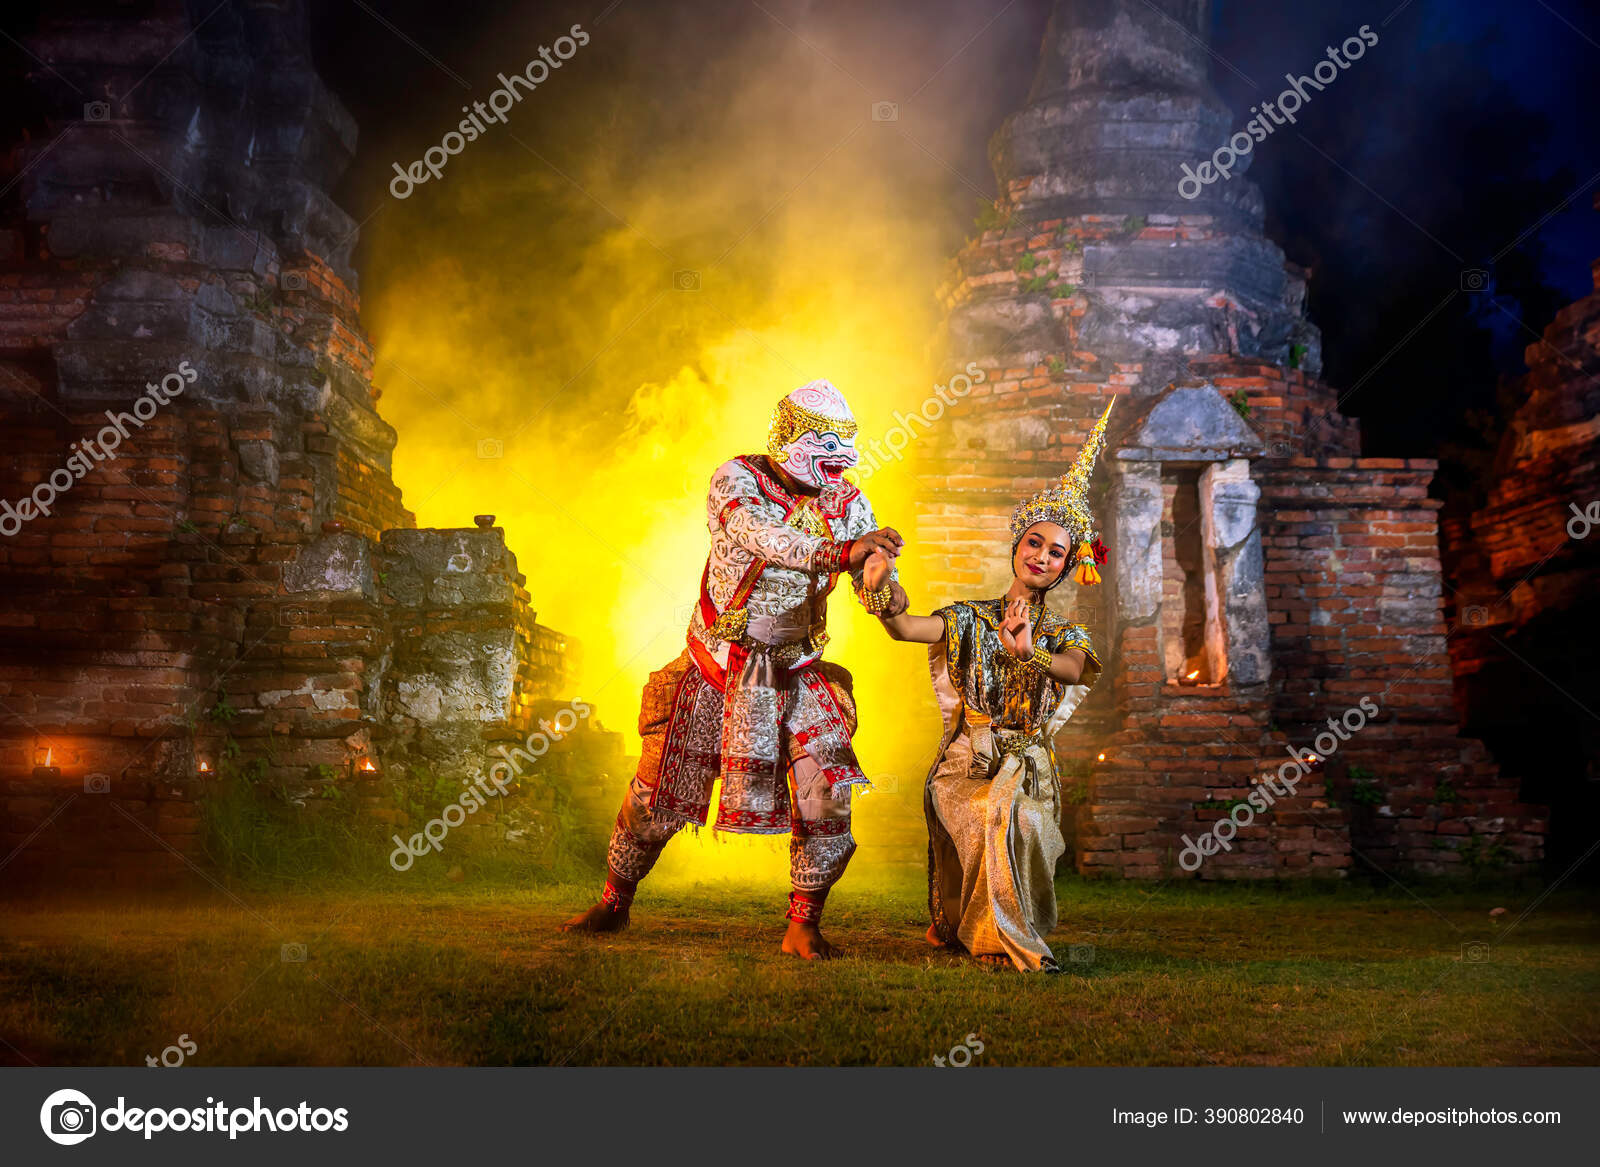 Áˆ Epic Stock Backgrounds Royalty Free Epic Images Photos Download On Depositphotos Photography, marketing and branding agency, creative video, design, social and digital media. ᐈ epic stock backgrounds royalty free epic images photos download on depositphotos